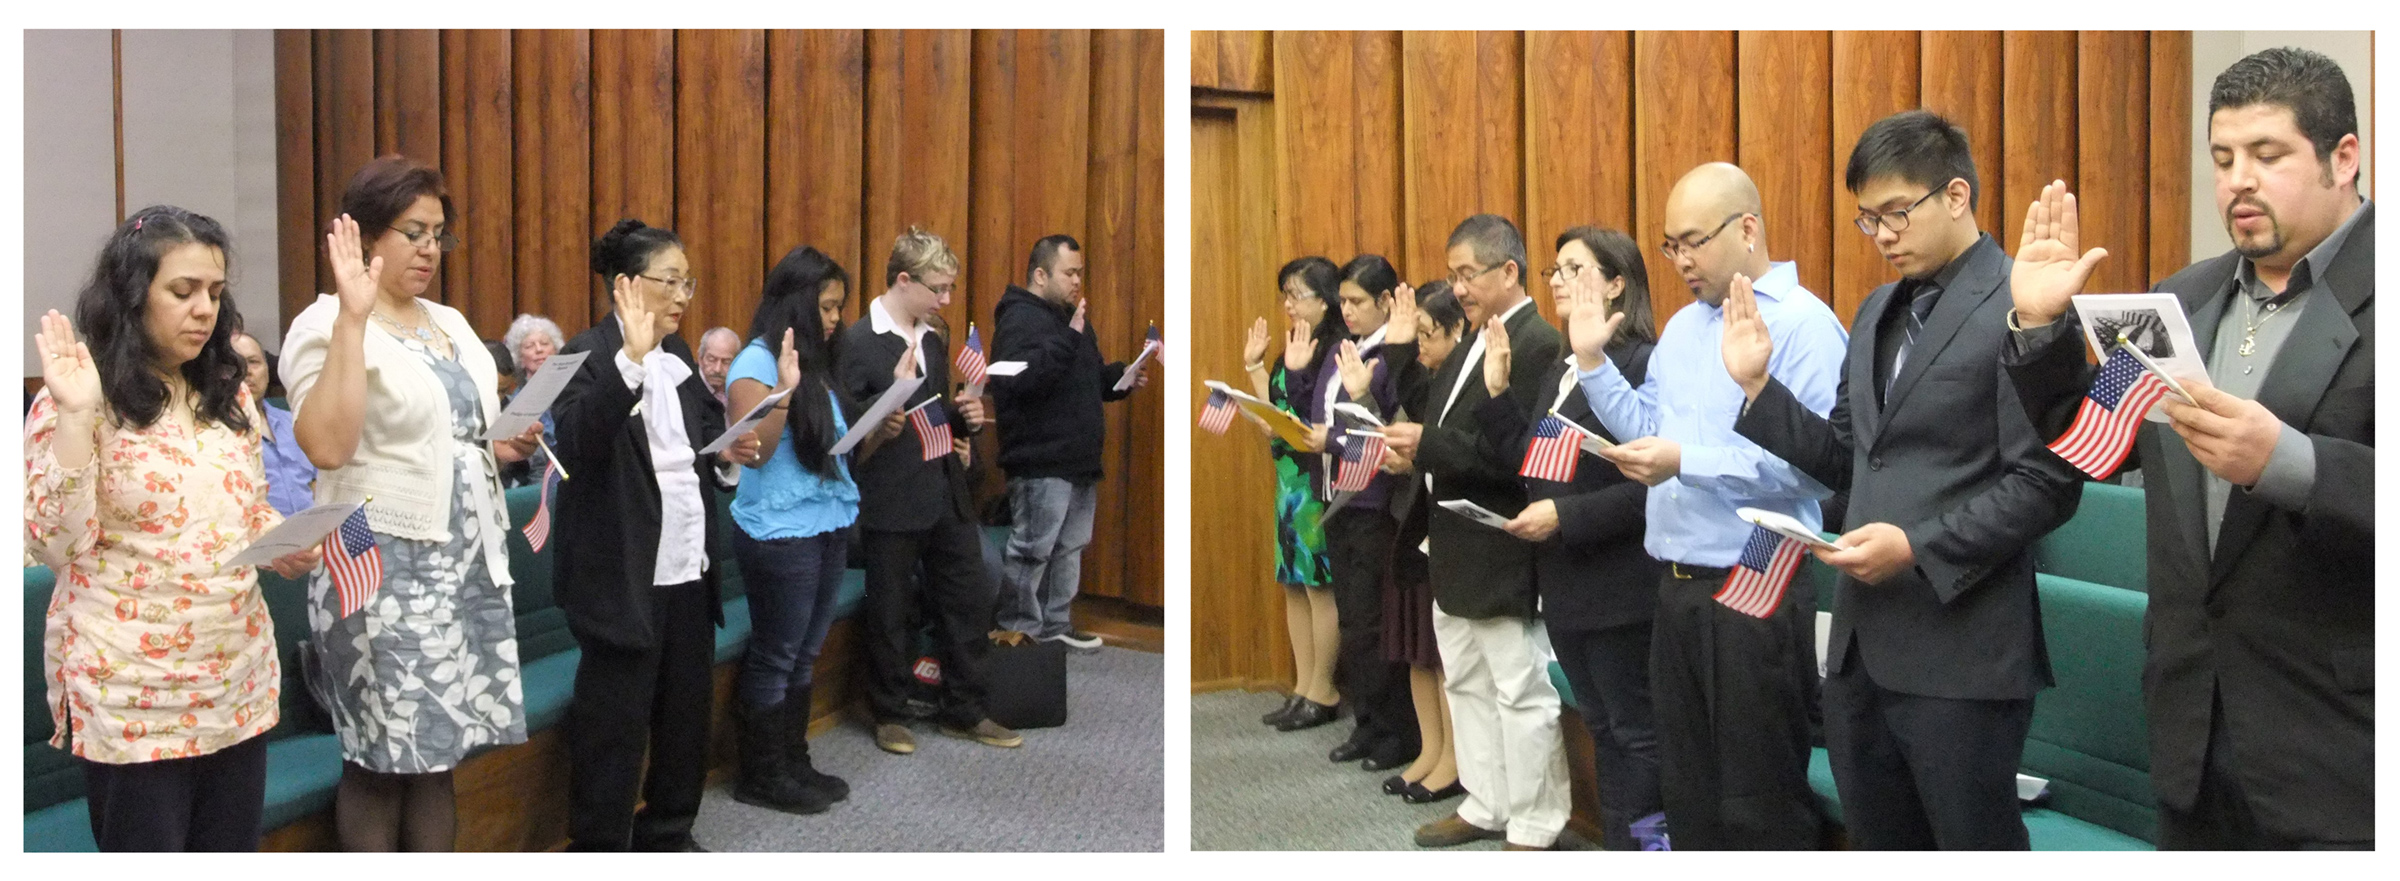 Juneau residents from other countries take the Oath of Allegiance to the U.S. to become American citizens at a ceremony on May 14, 2014. (Photo composite by Rosemarie Alexander/KTOO)